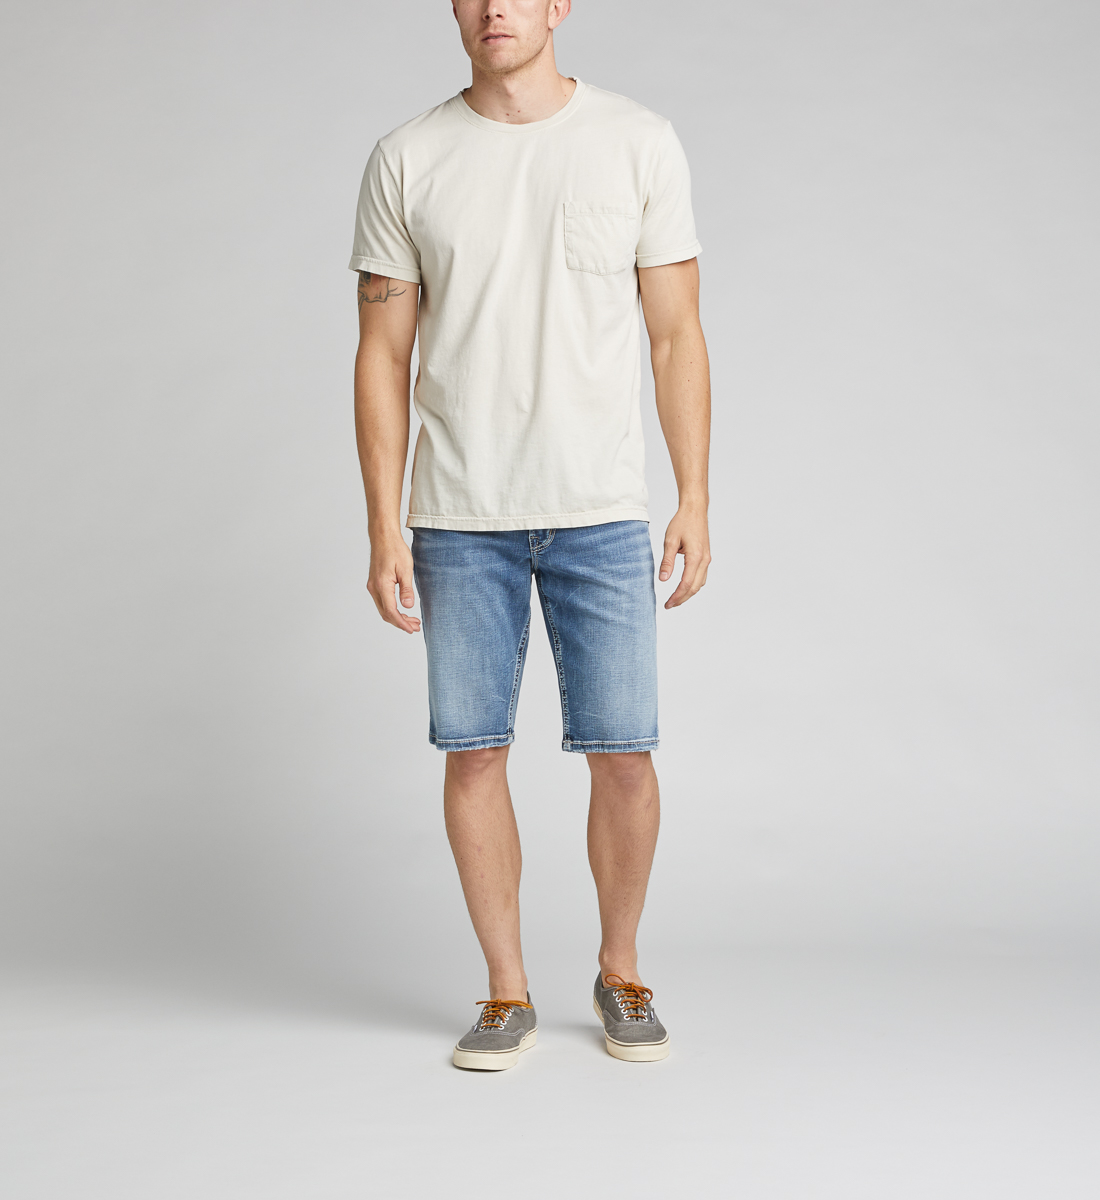 Zac Relaxed Fit Shorts Alt Image 1